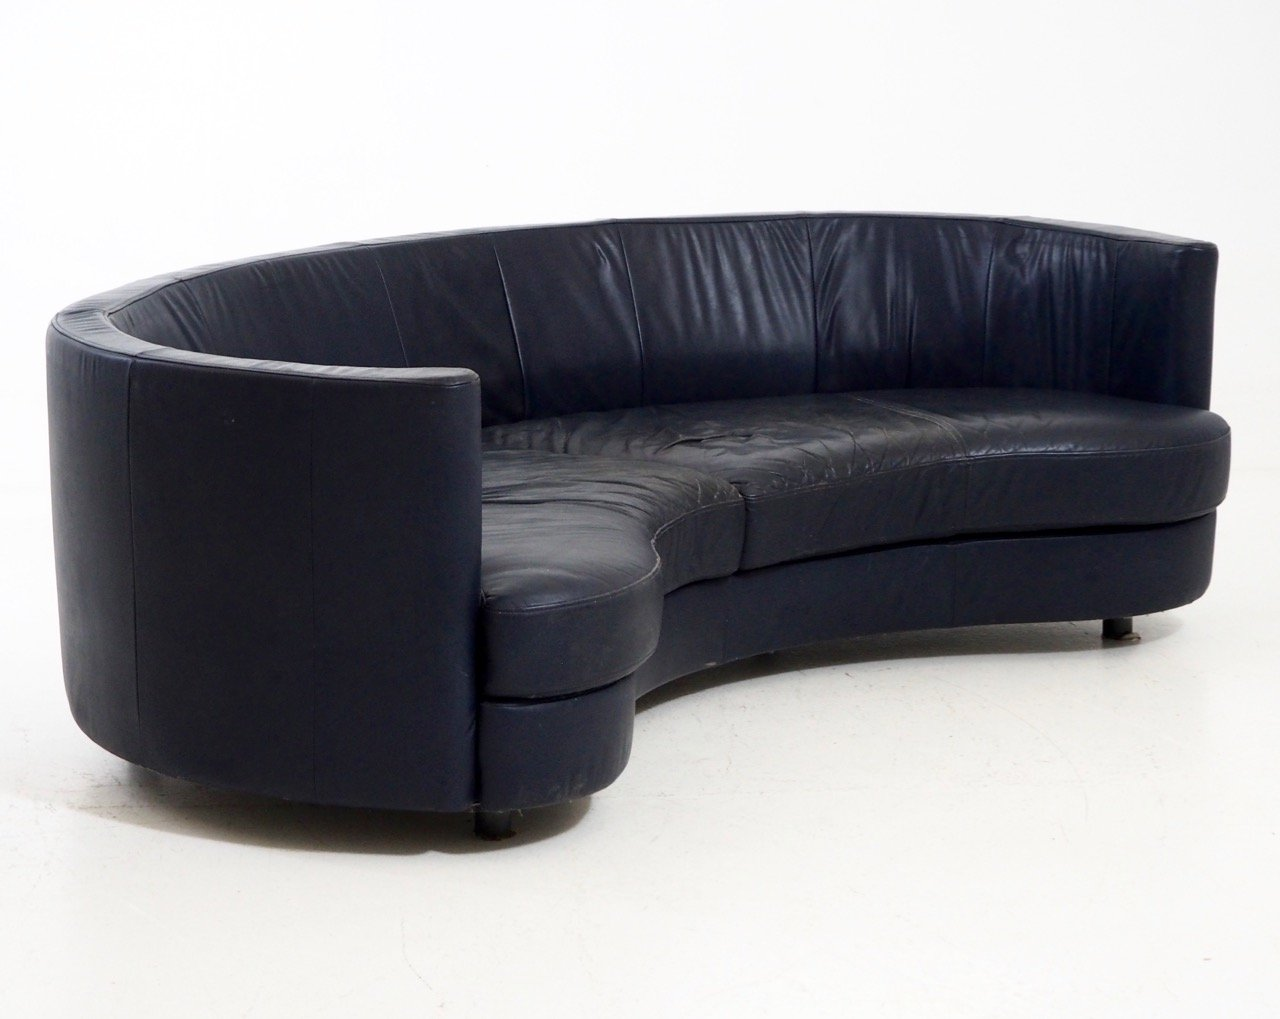 vintage sofa in leather by rolf benz 1960s for sale at pamono. Black Bedroom Furniture Sets. Home Design Ideas